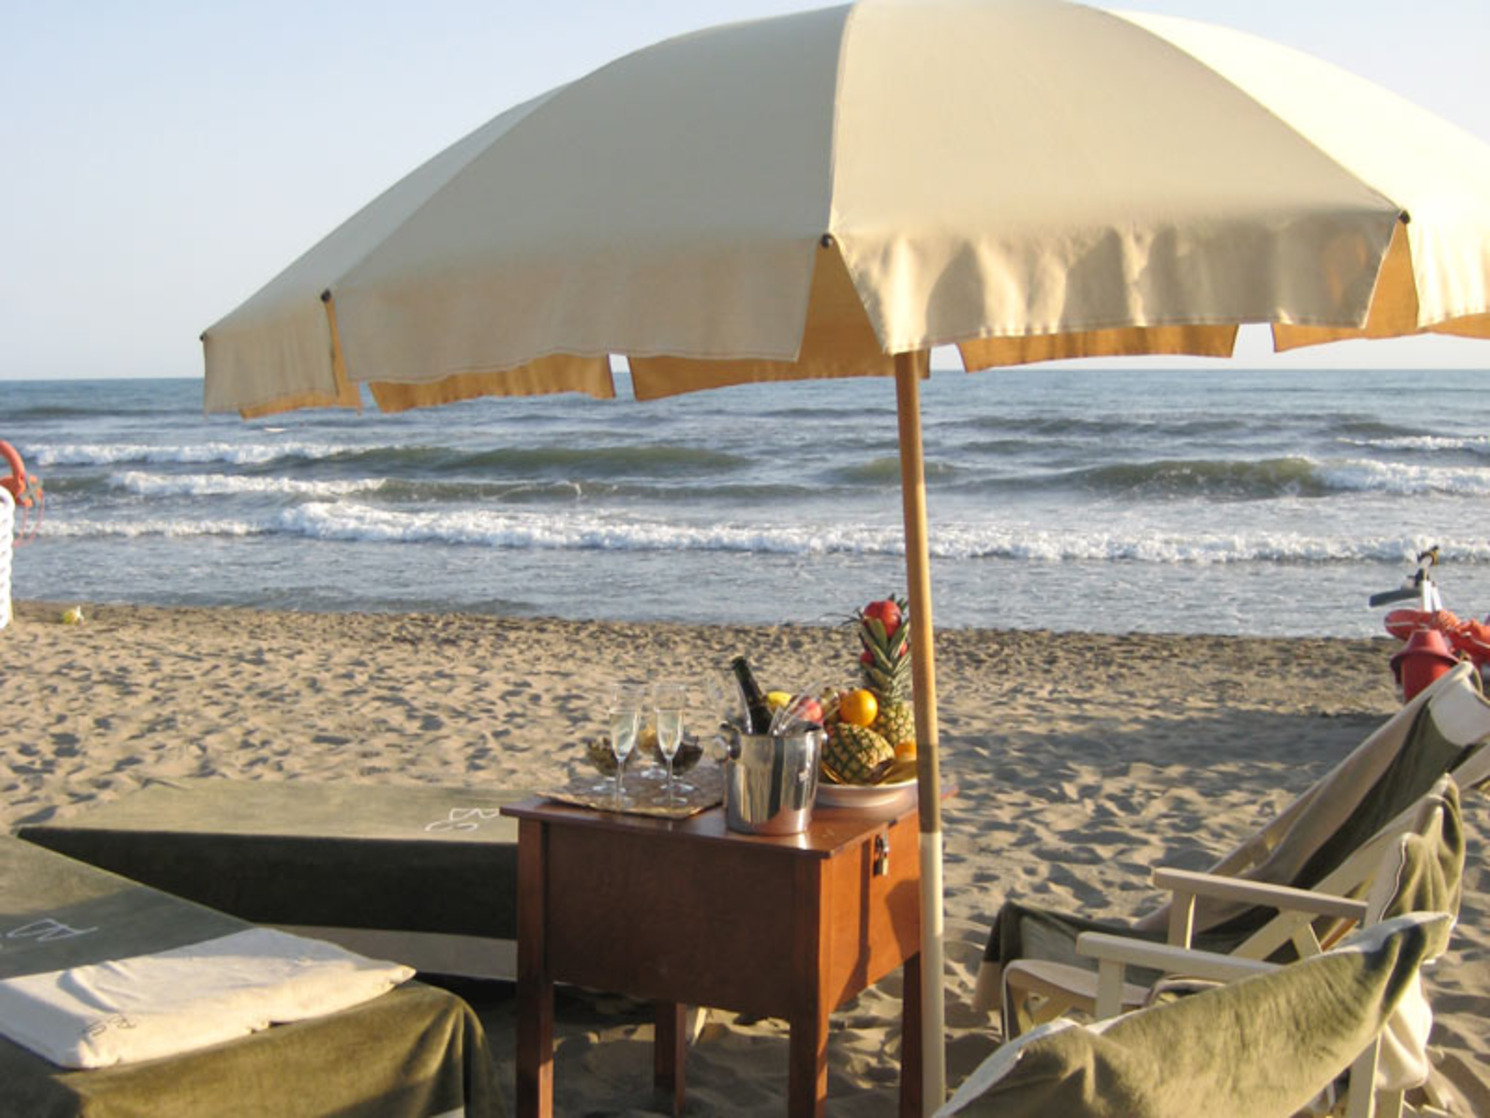 Our Hotel offer a private beach service in Versilia, Tuscany